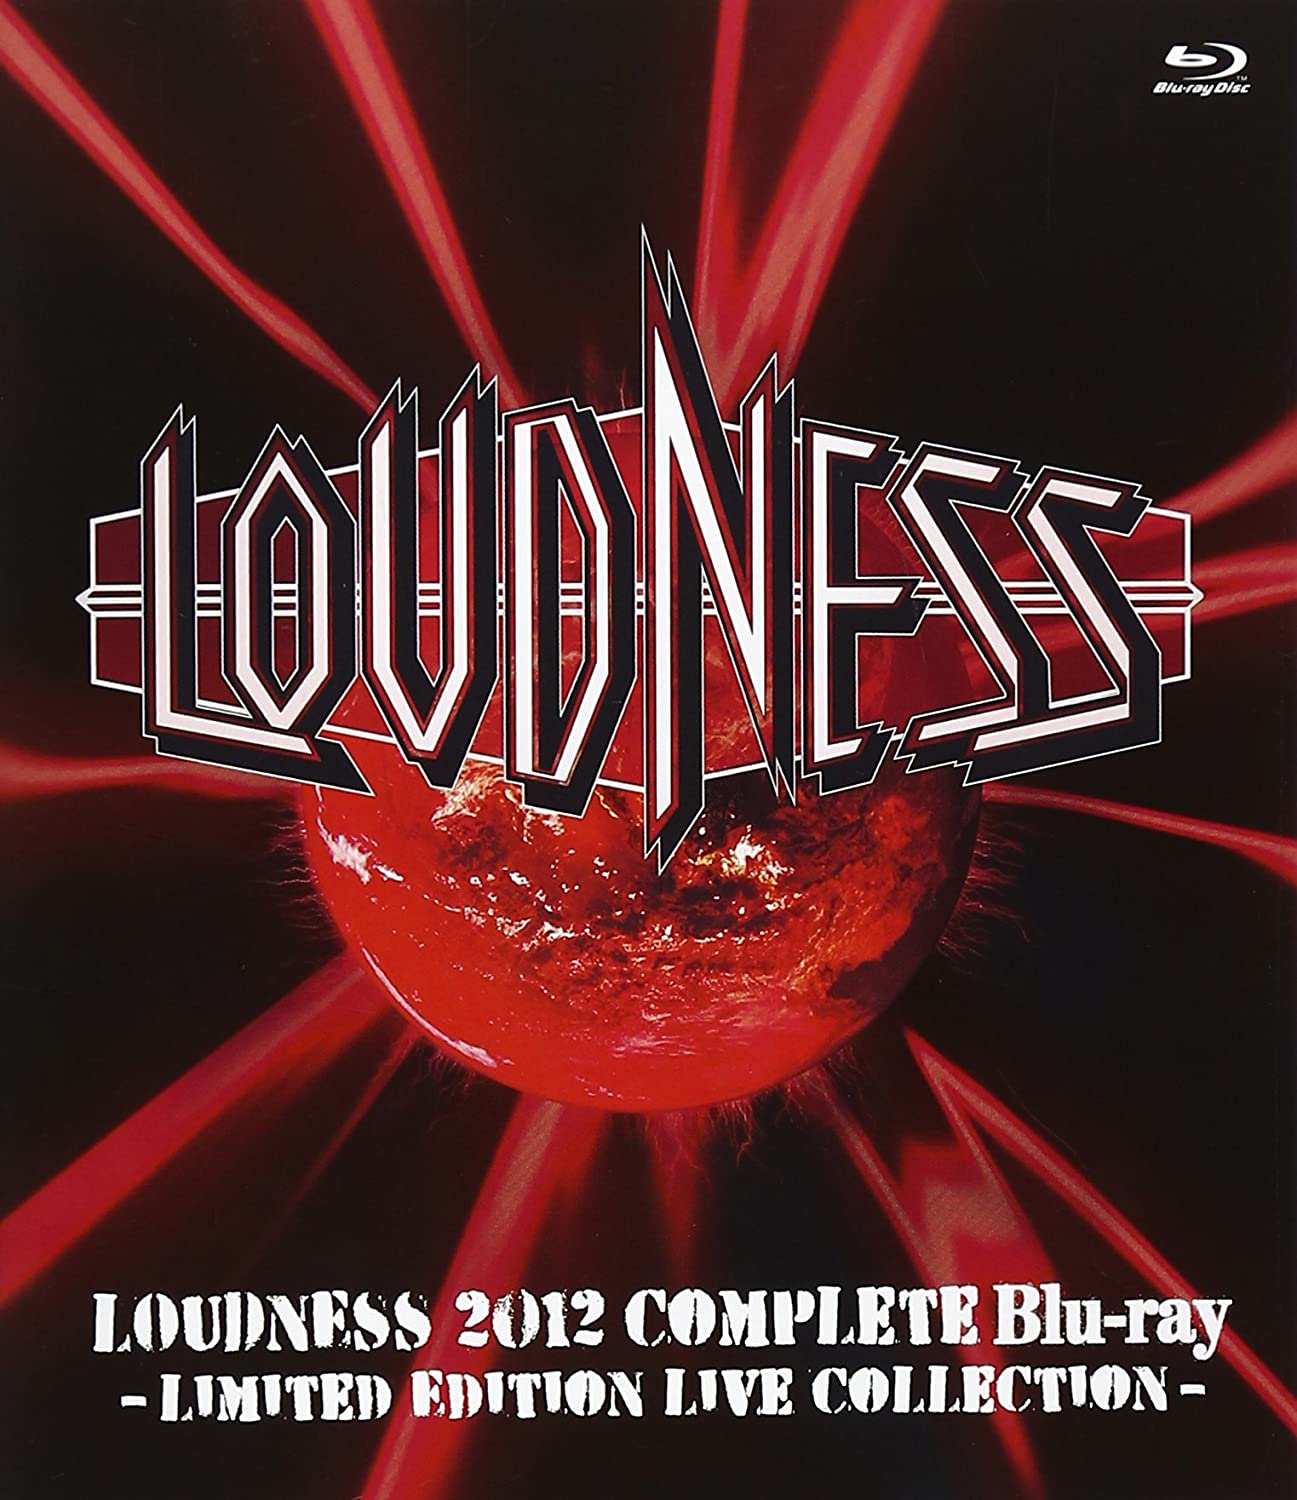 LOUDNESS 2012 Complete Blu-ray -LIMITED EDITION LIVE COLLECTION-【Blu-ray】 B00REQZHJ2